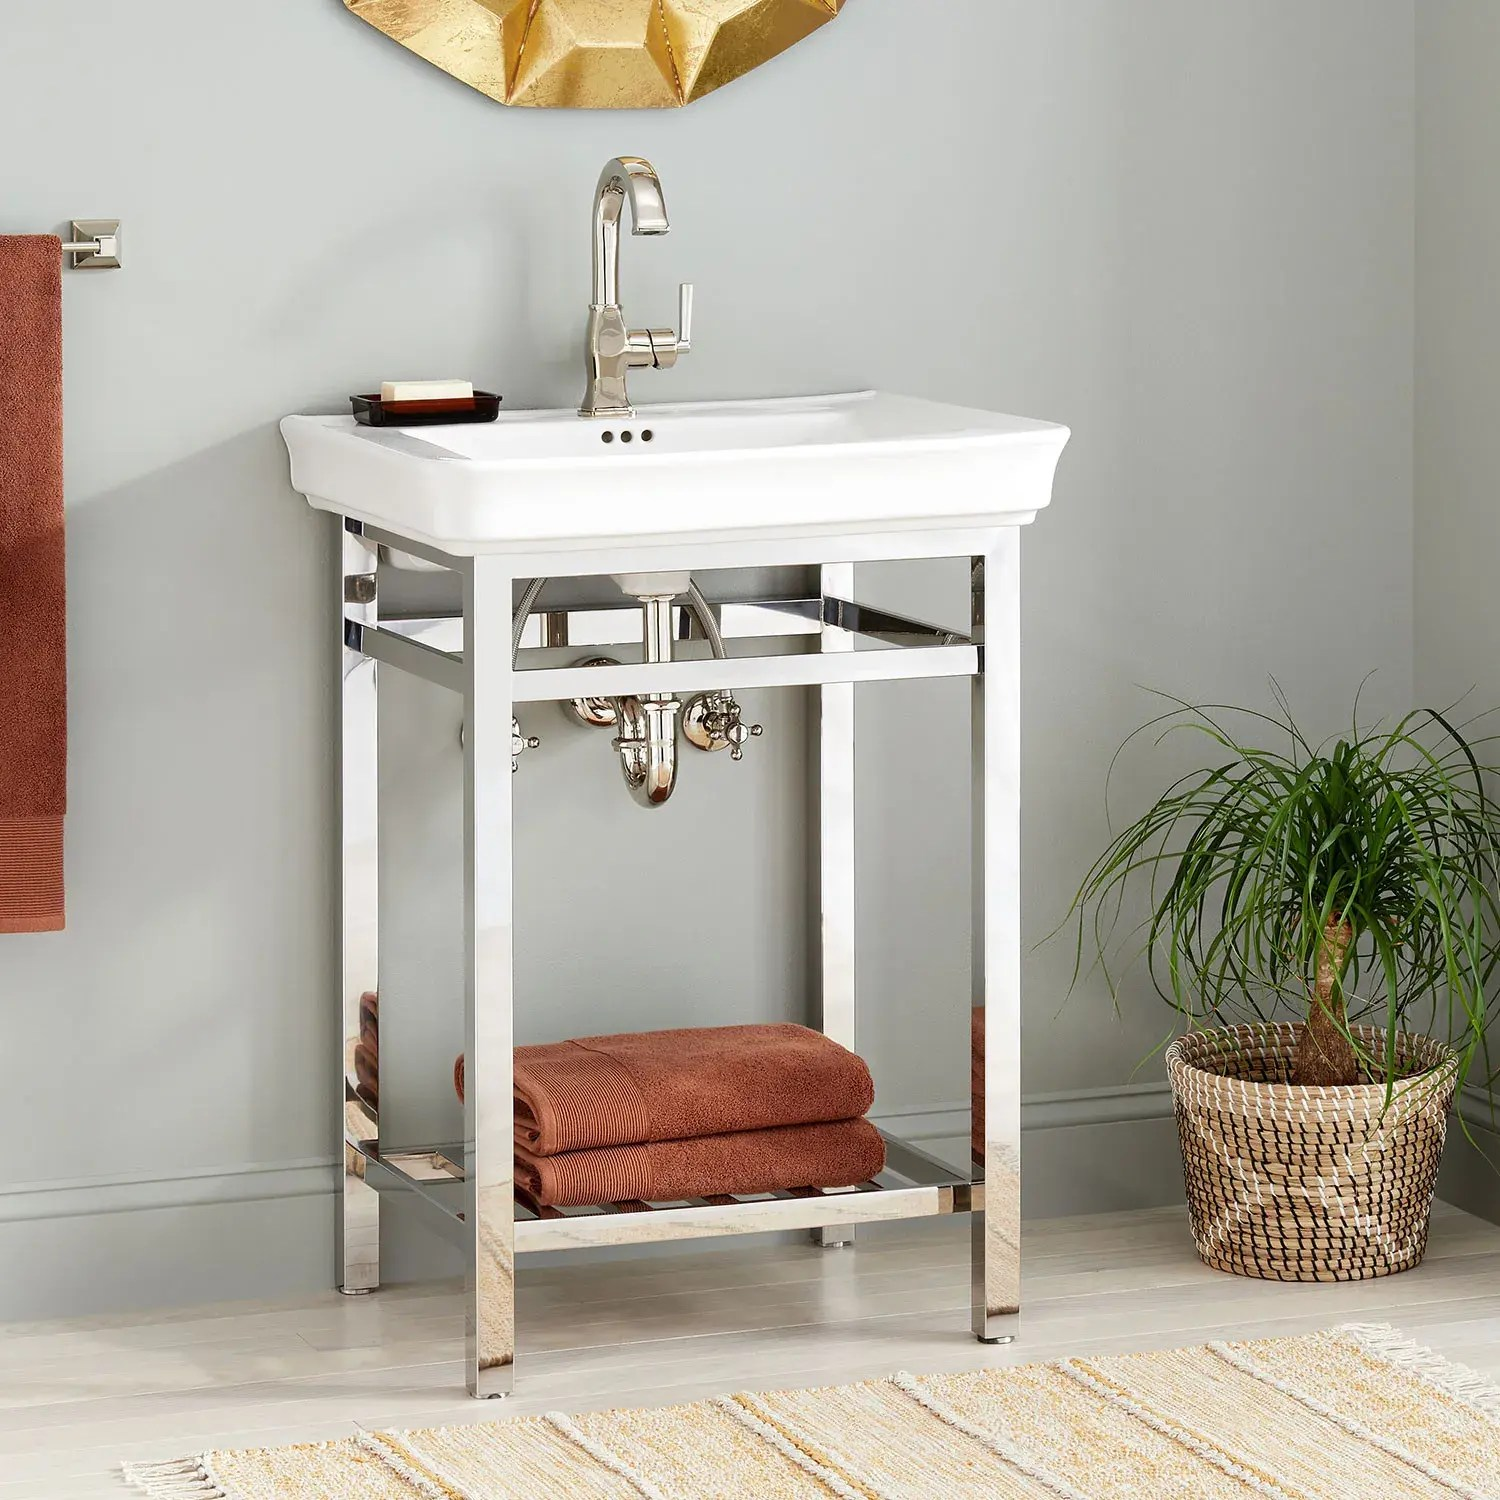 26 halyard console sink with traditional top